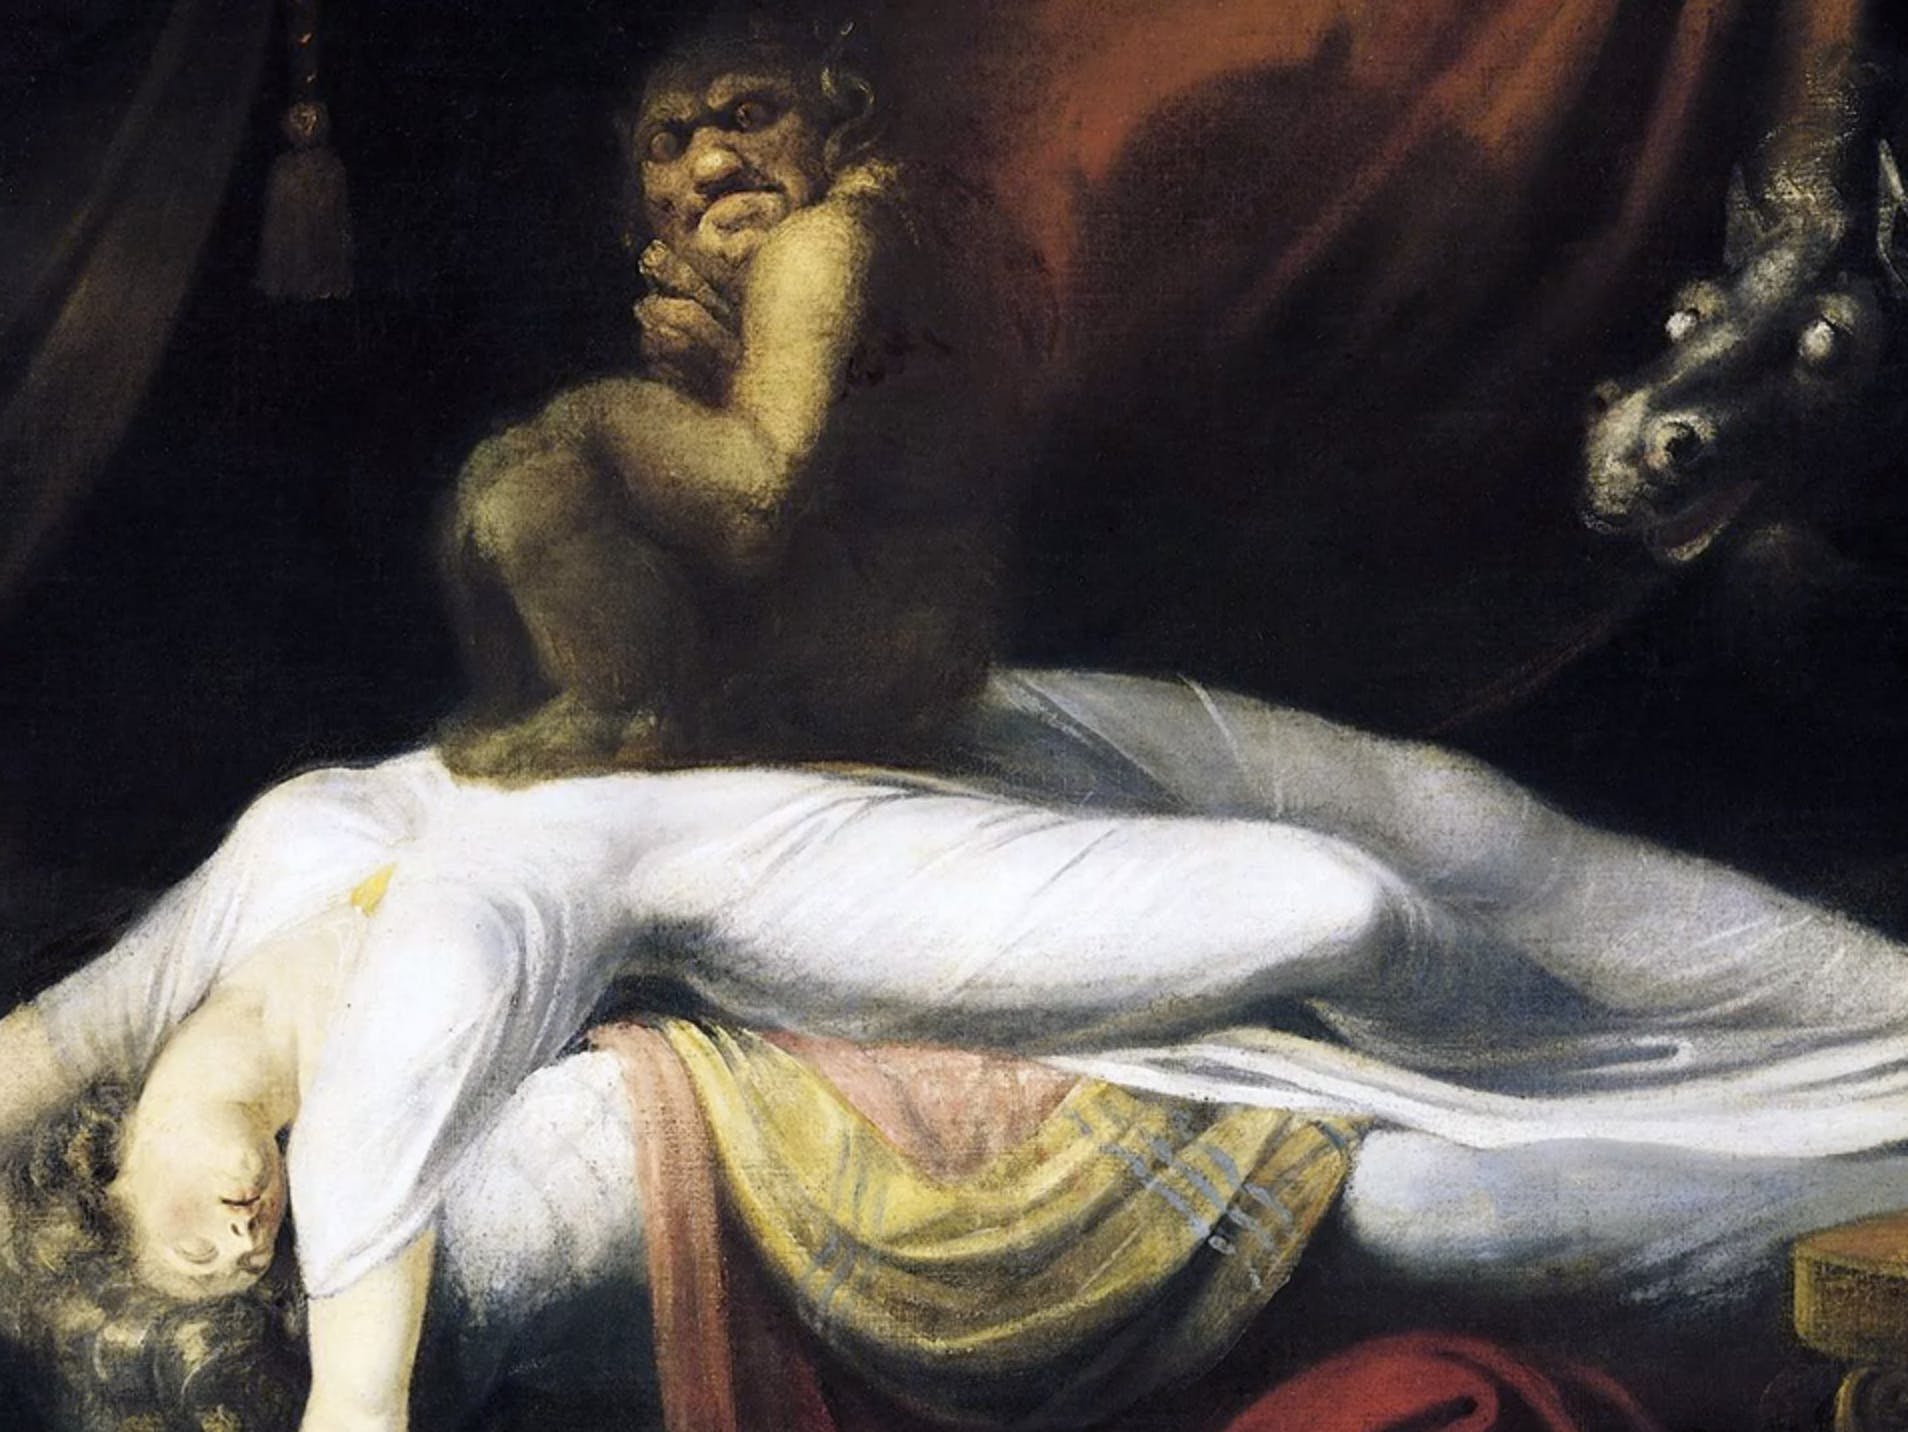 Sleep Paralysis Cure Will Finally Vanquish the Demons of Our